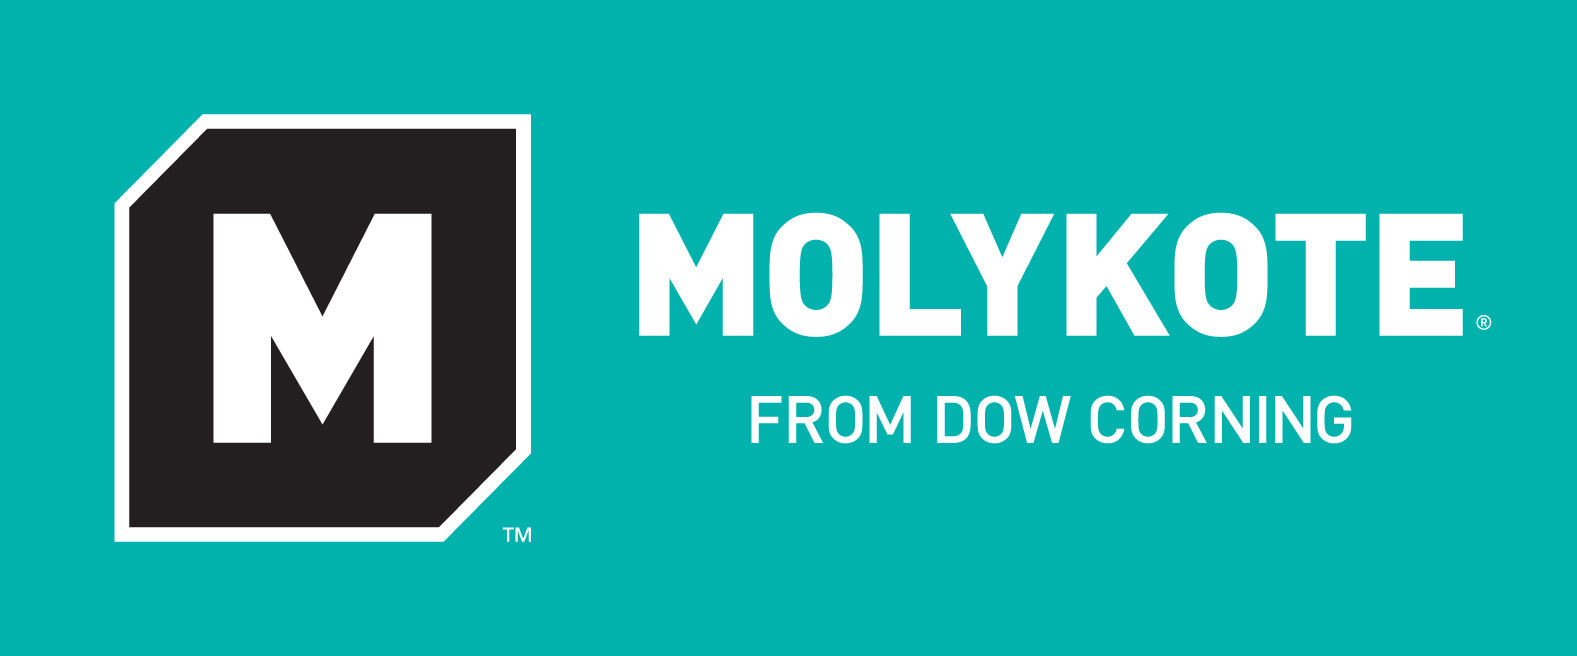 Molykote products